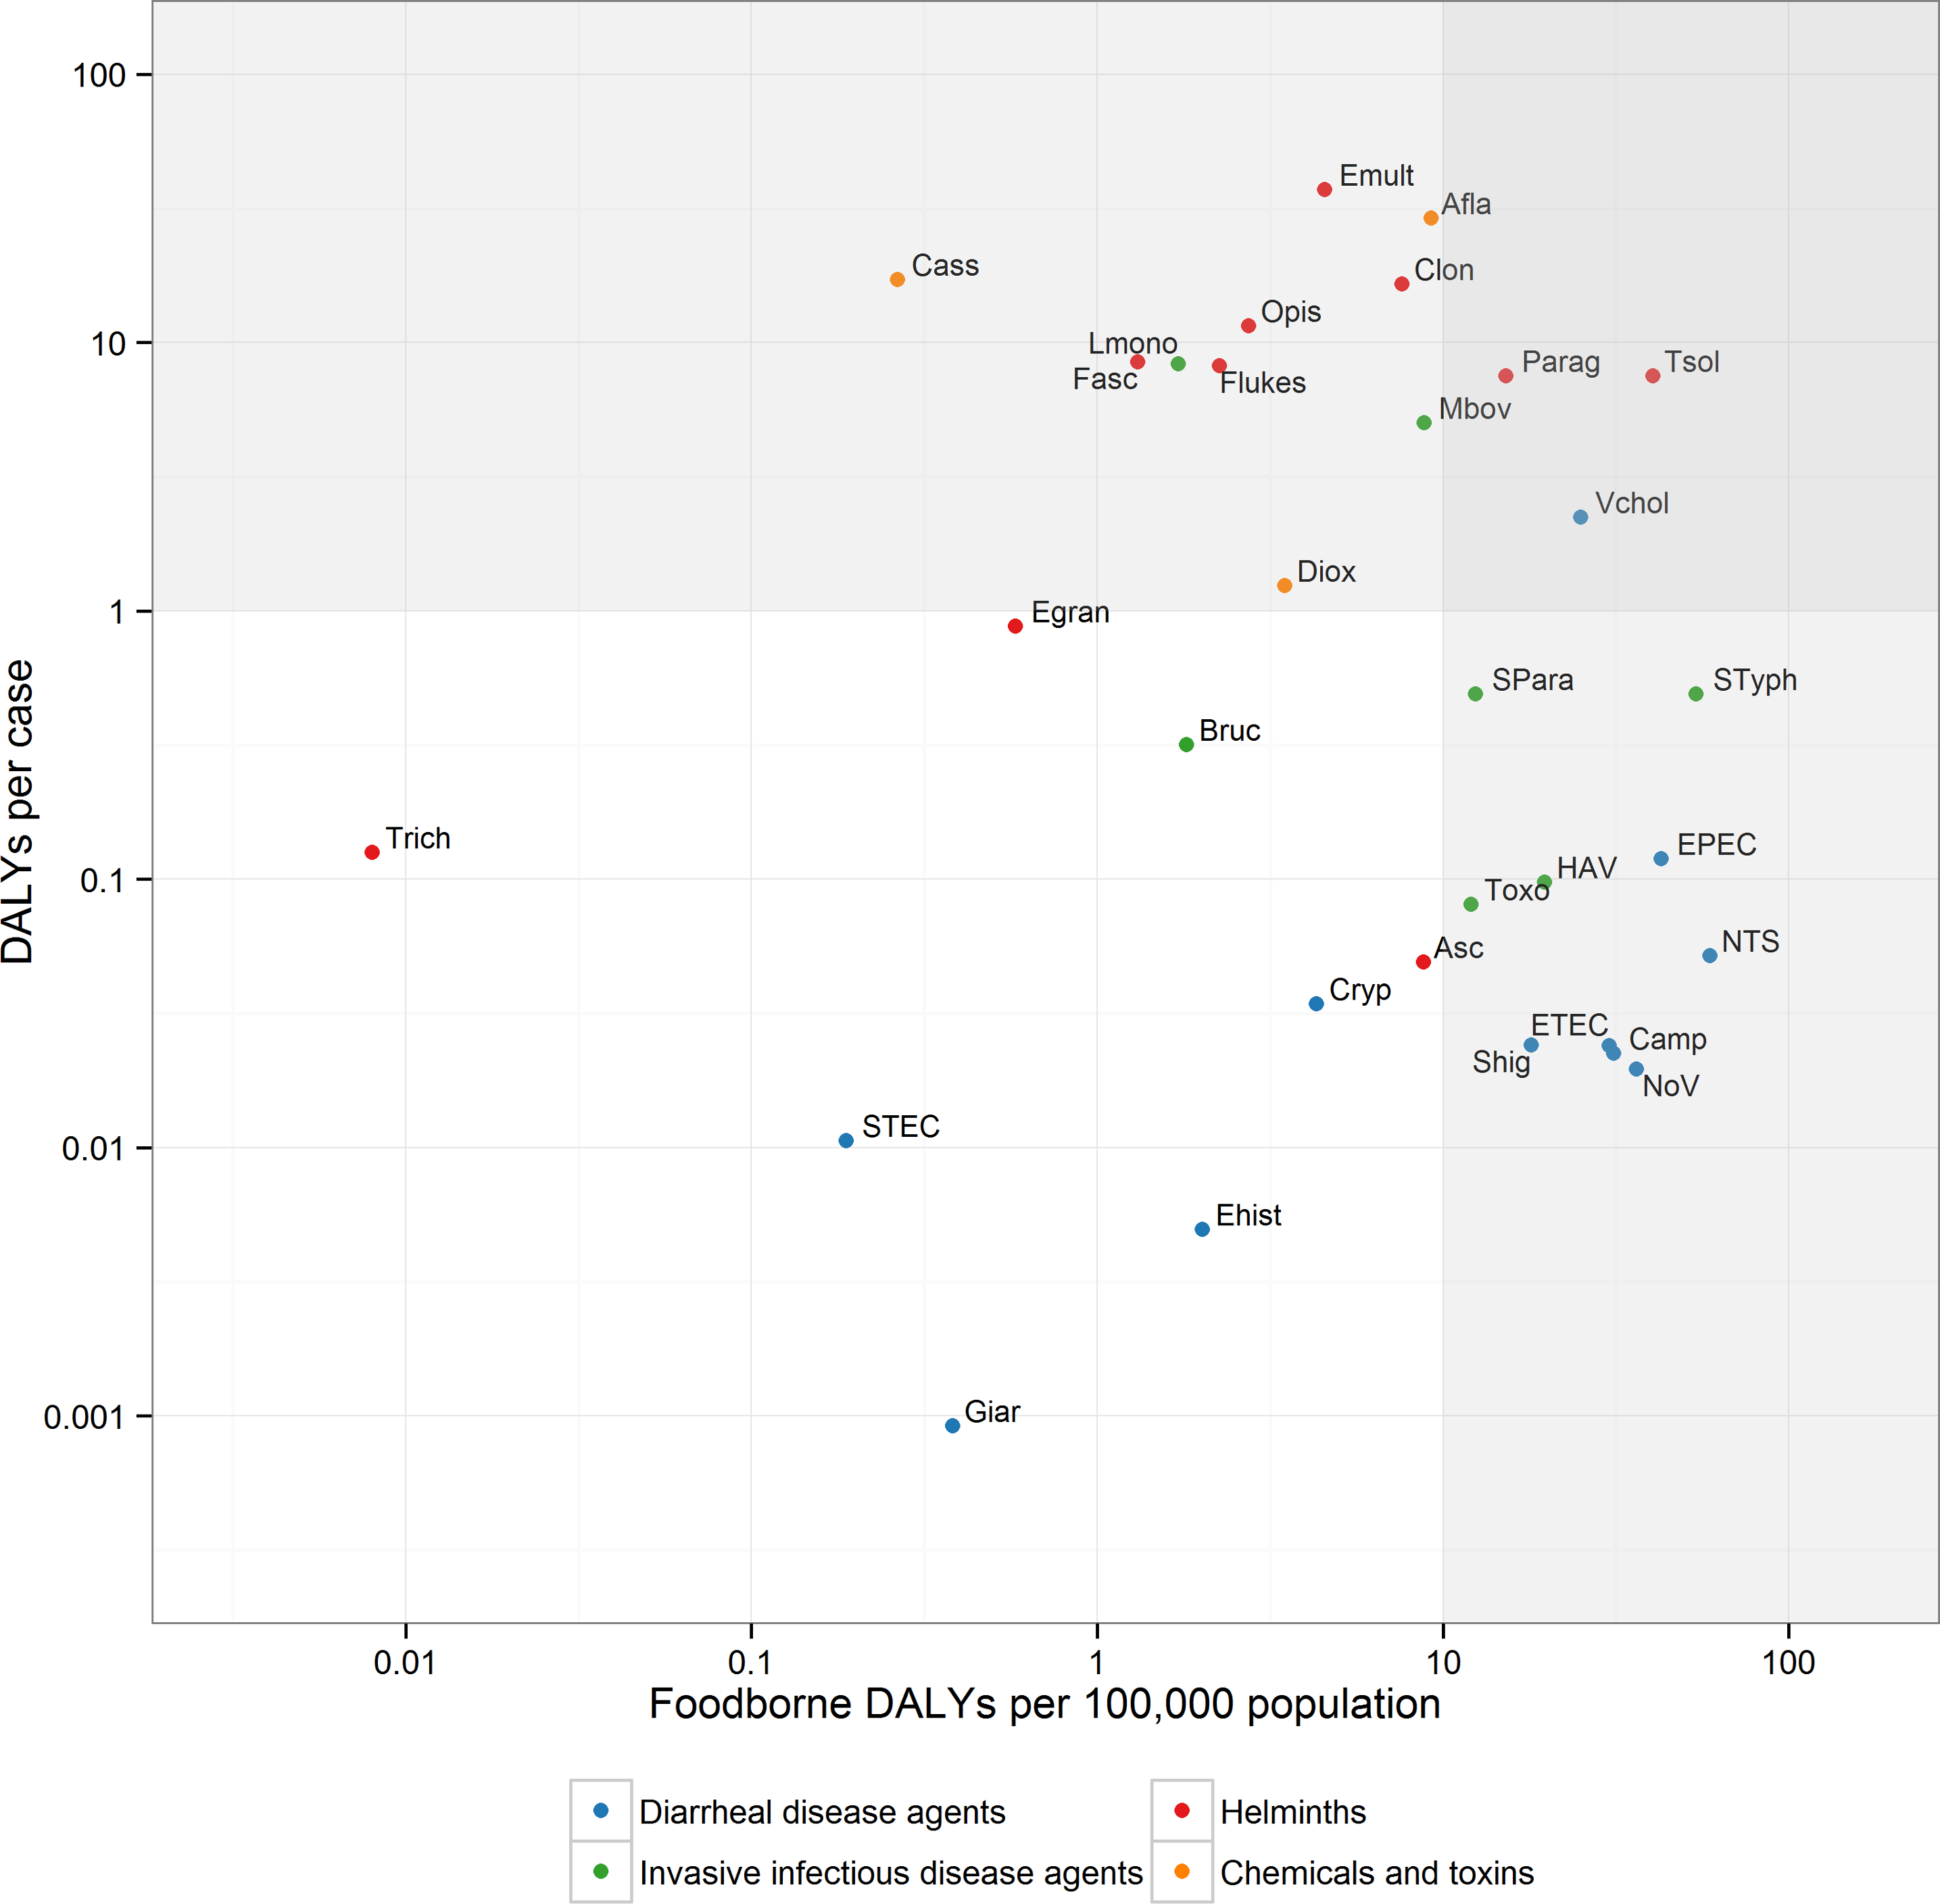 Scatterplot of the global burden of foodborne disease per 100,000 population and per case.